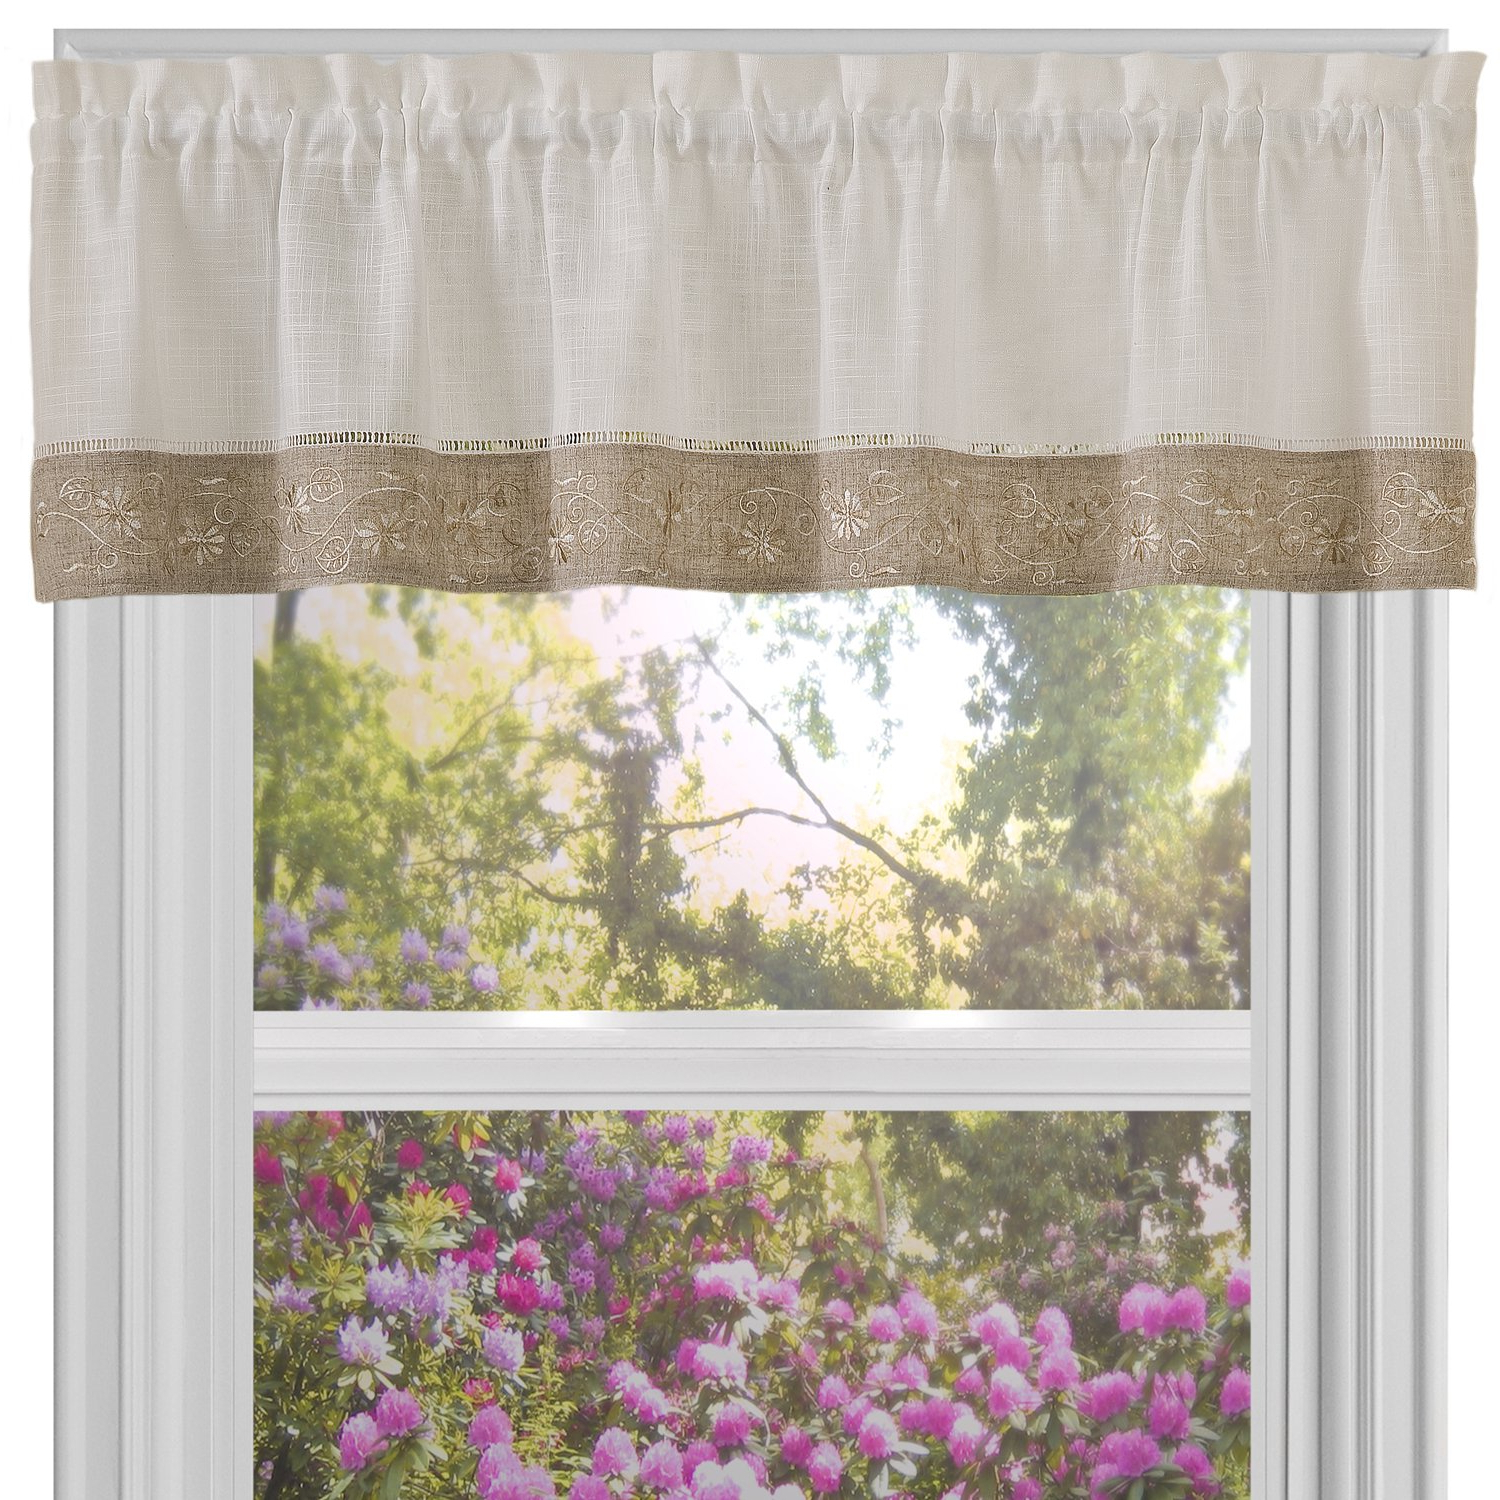 Widely Used Oakwood Linen Style Decorative Window Curtain Tier Sets In Amazon: Sweet Home Collection Oakwood Linen Design (View 7 of 20)